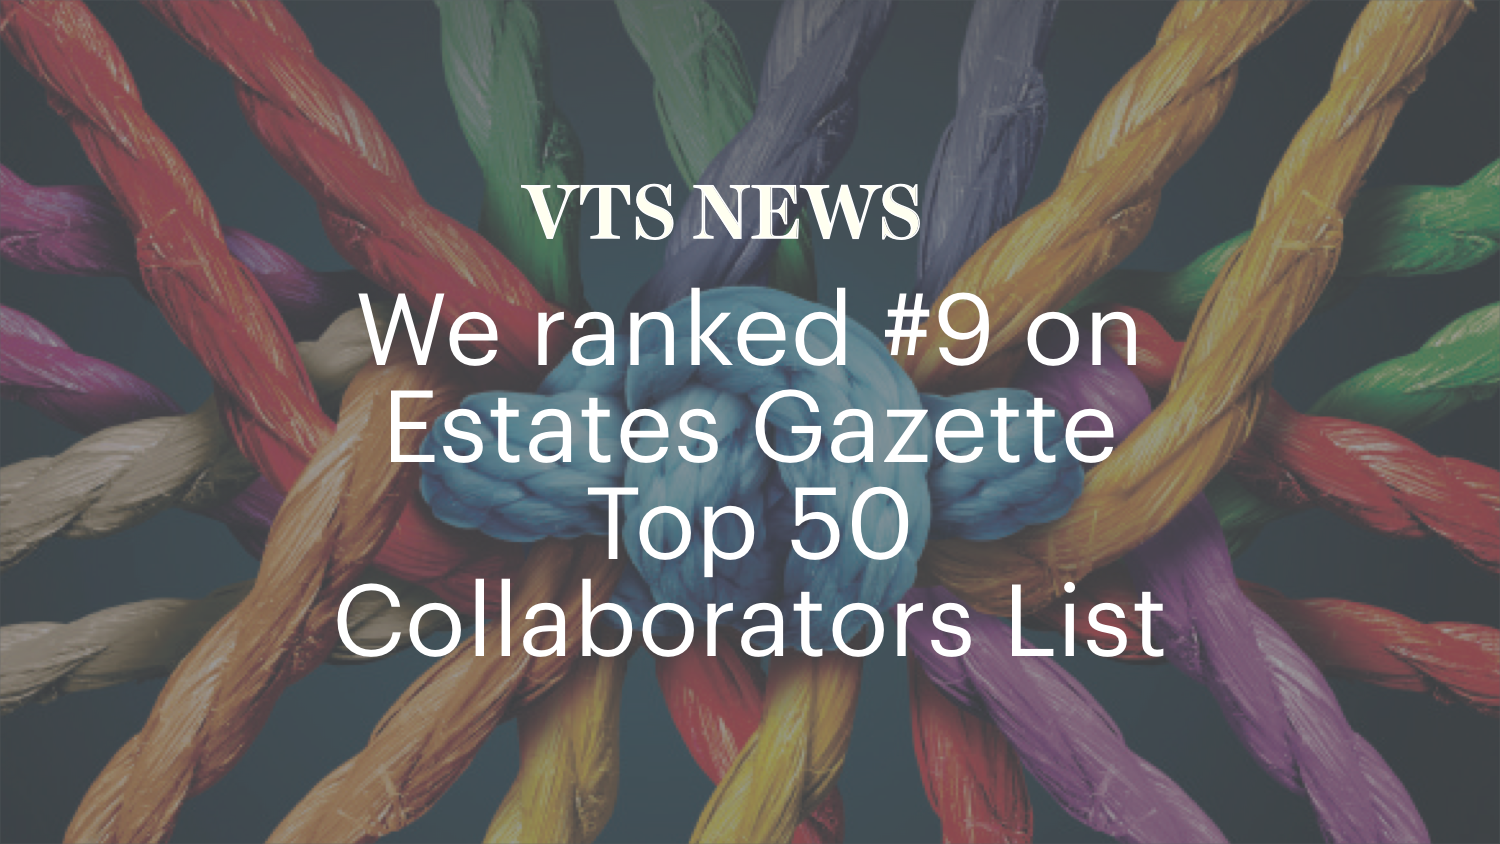 VTS Ranked #9 on Estates Gazette Top 50 Collaborators in Real Estate List